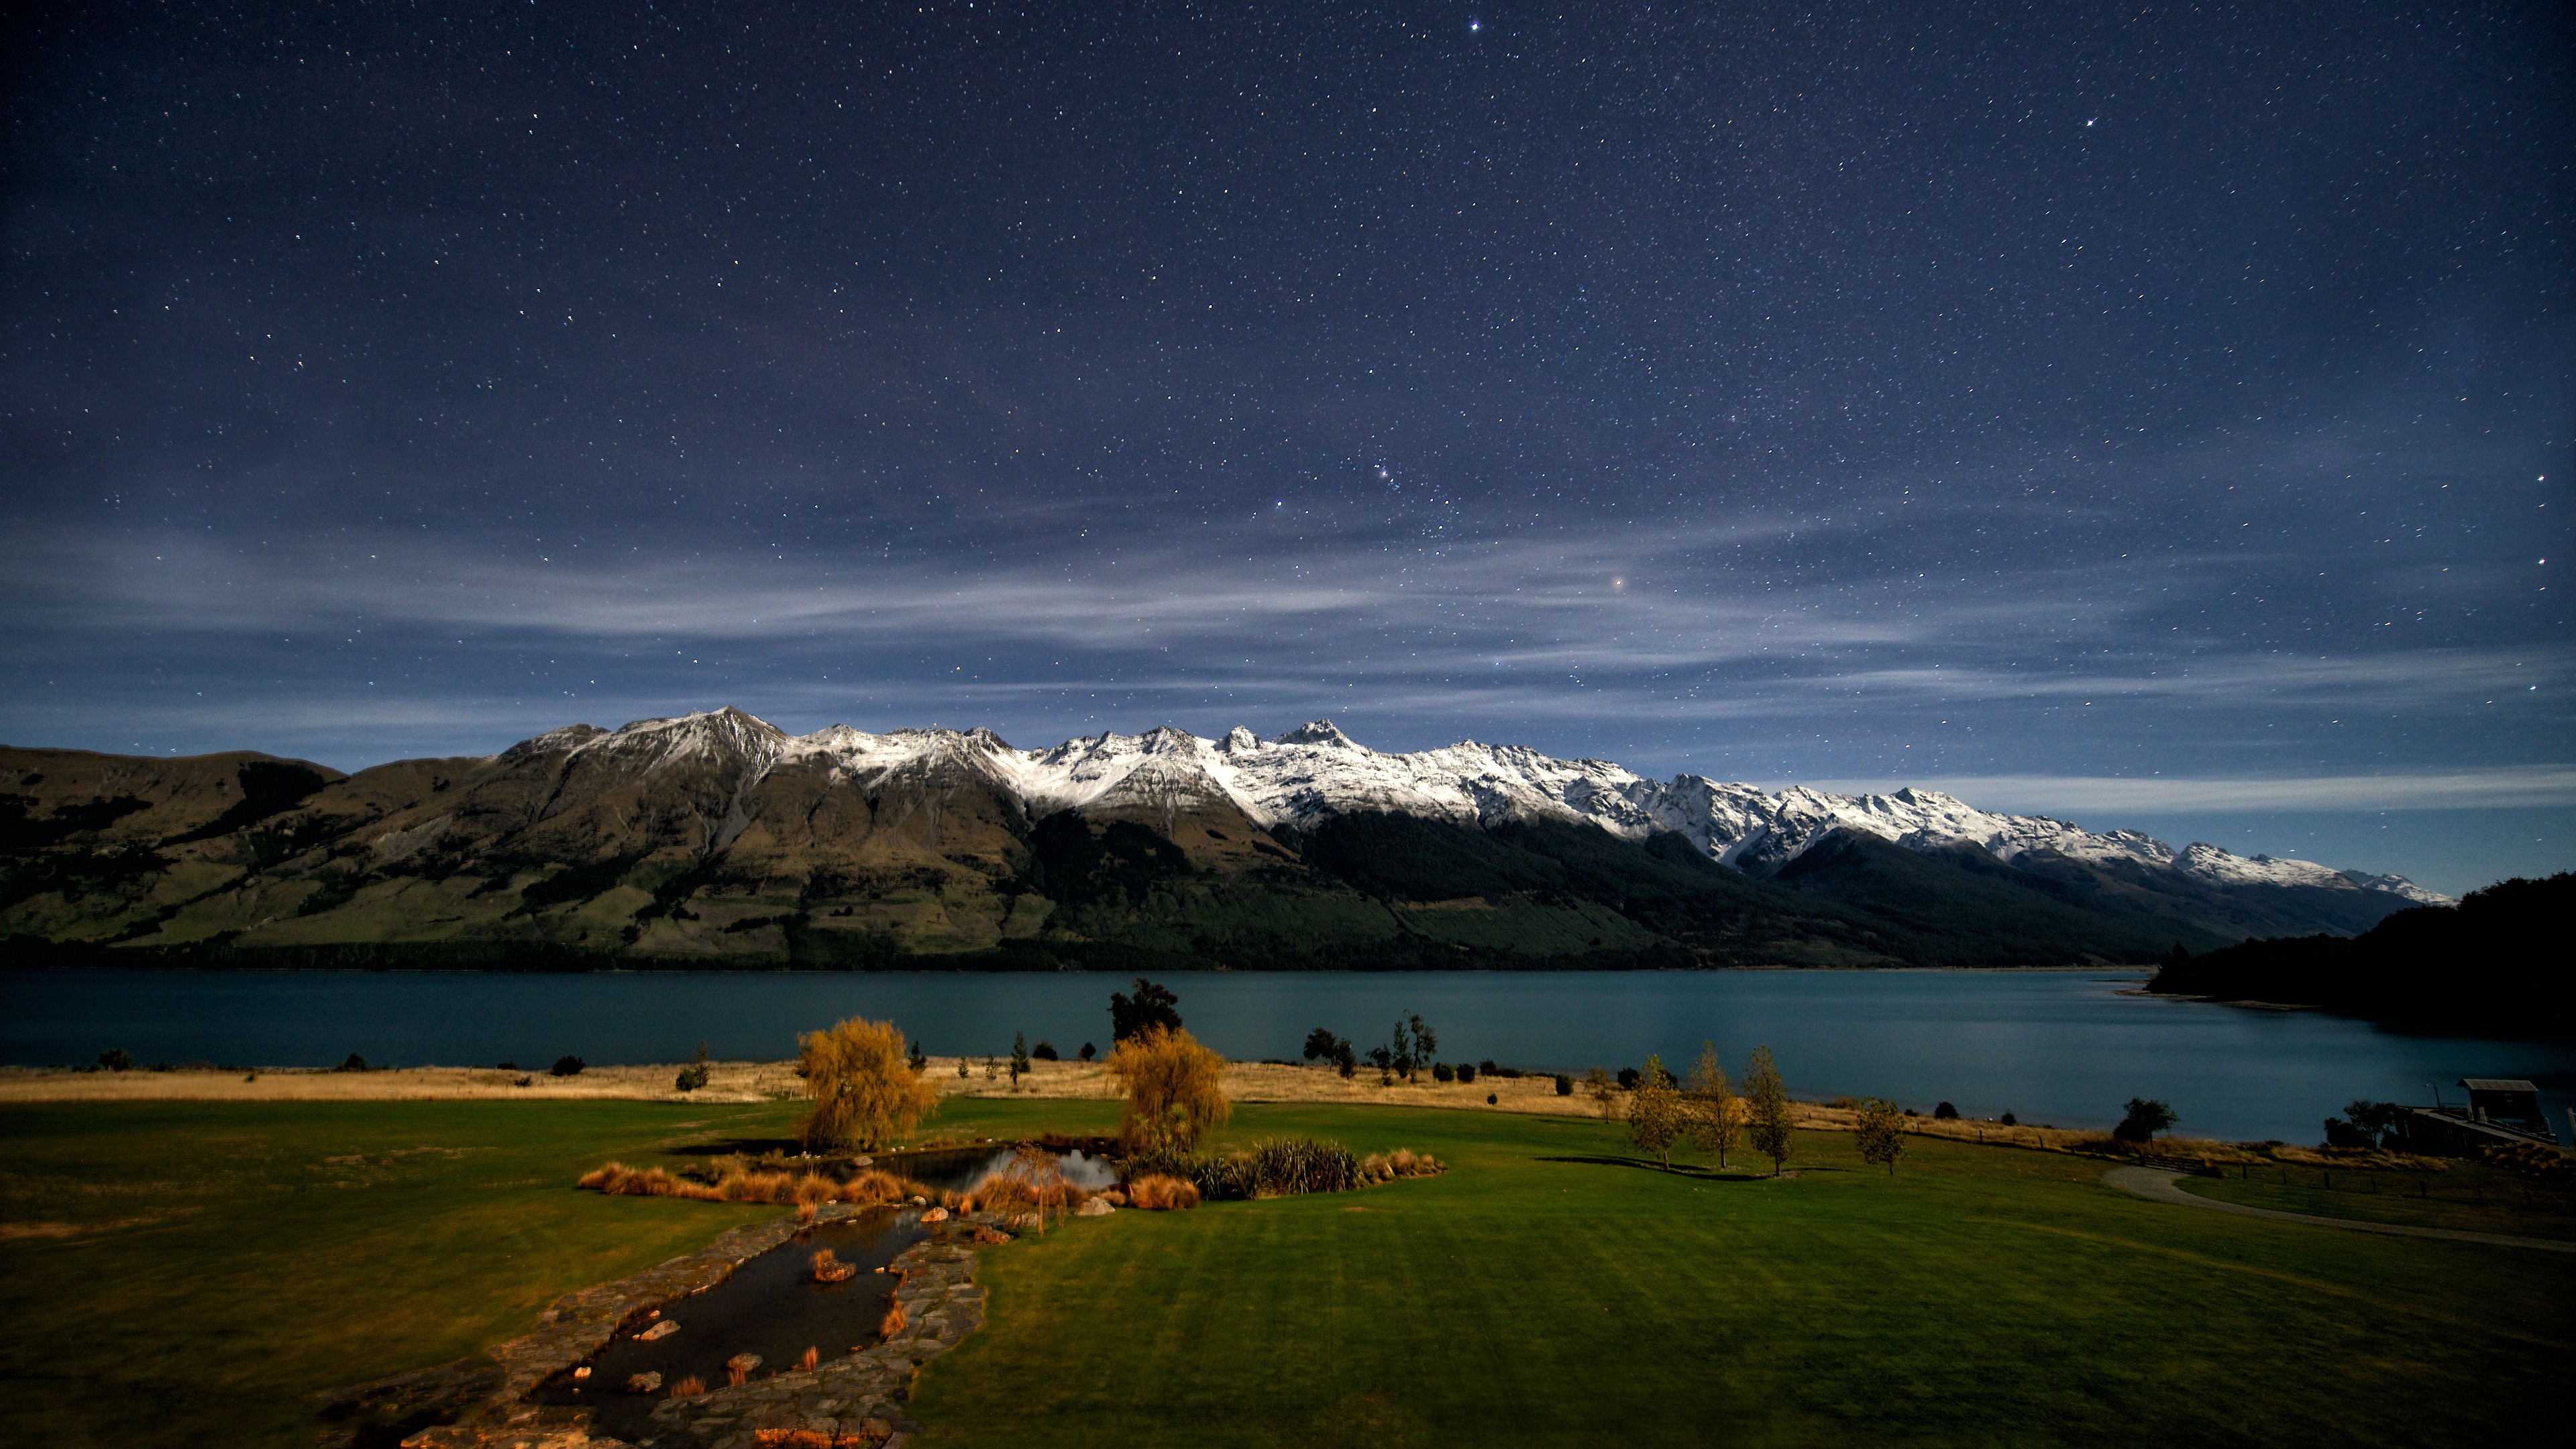 Must see Wallpaper Mobile Landscape - new-zealand-3840x2160-4k-hd-wallpaper-queenstown-lake-wakatipu-stars-863  Trends_77688.jpg